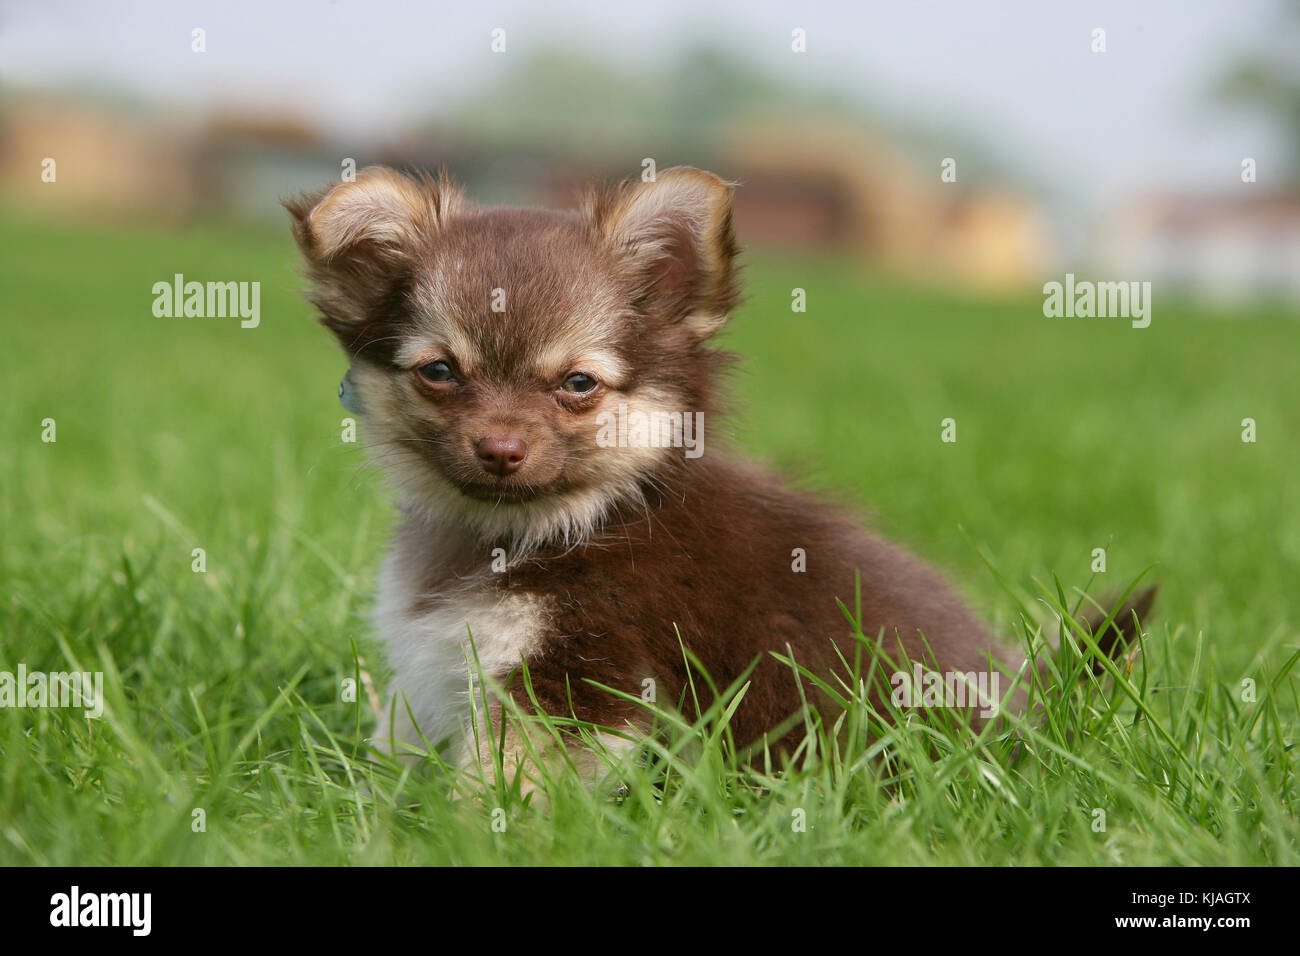 Long Haired Chihuahua Puppy Stock Photo Alamy